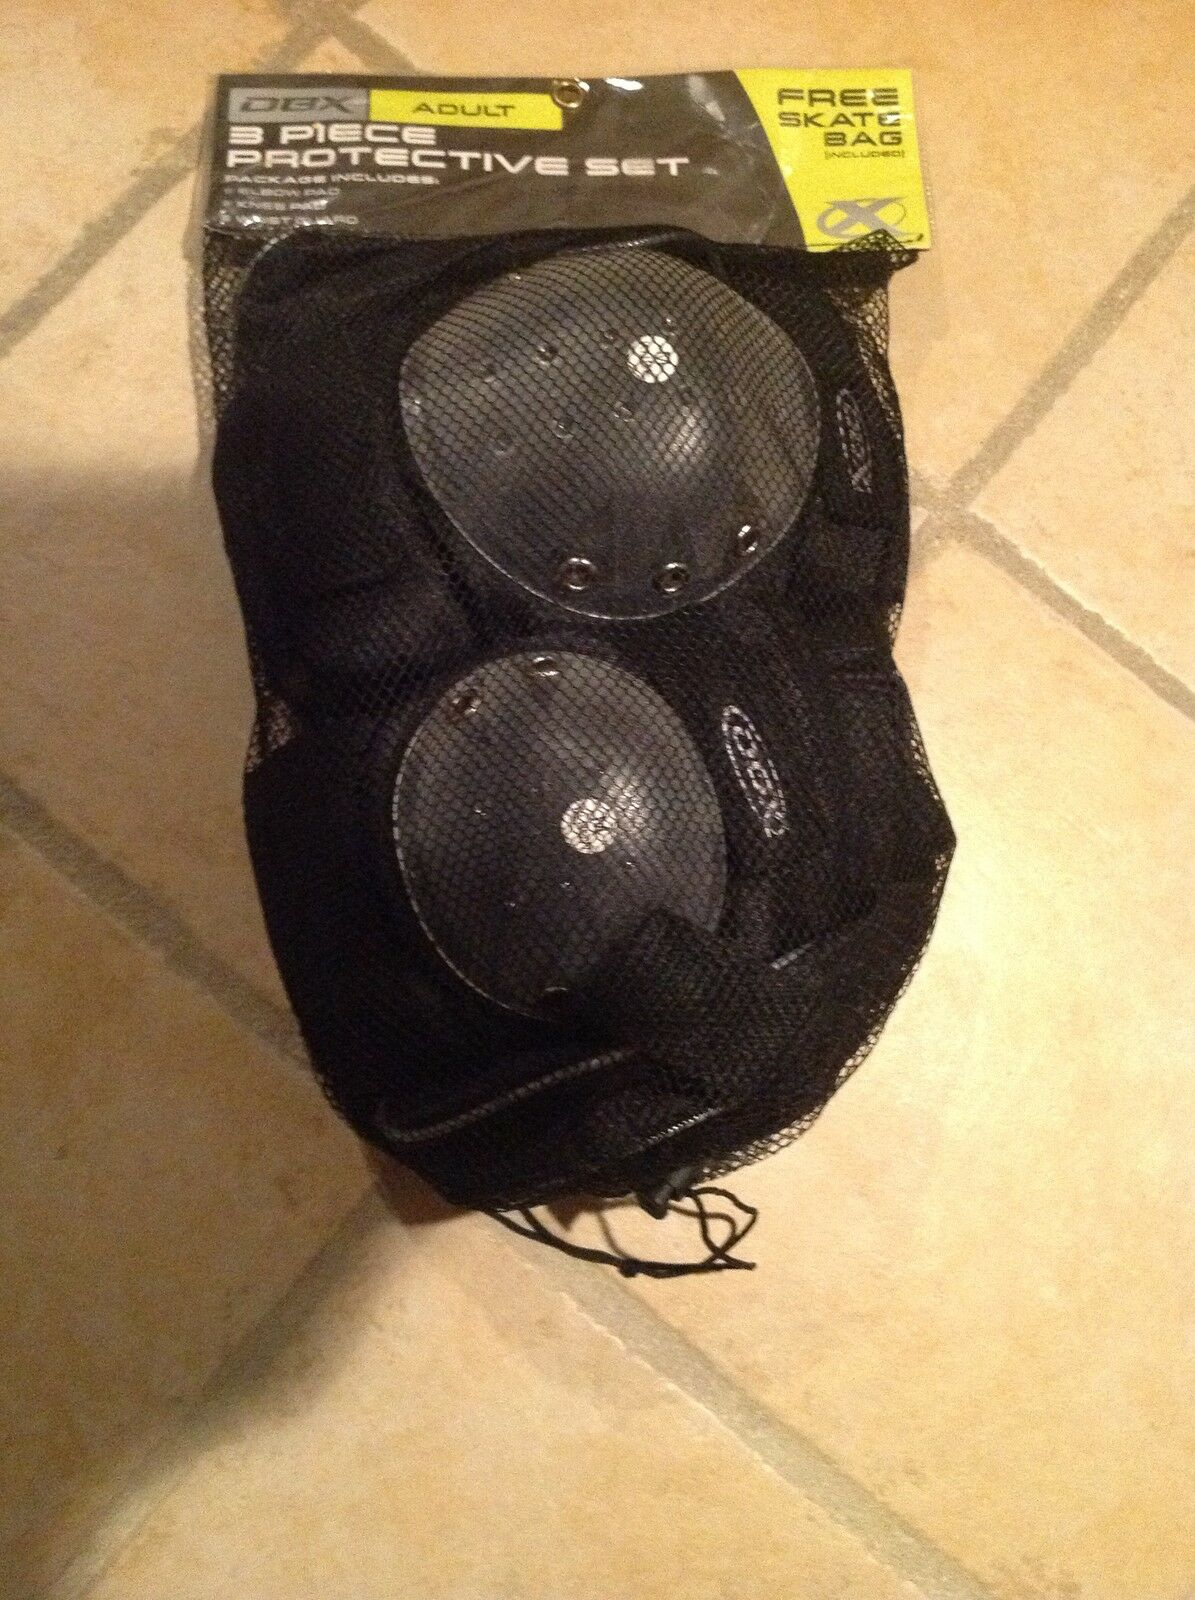 Brand New DBX Adult (Medium Size) 3 Pieces Skating Predective Set With Free Bag